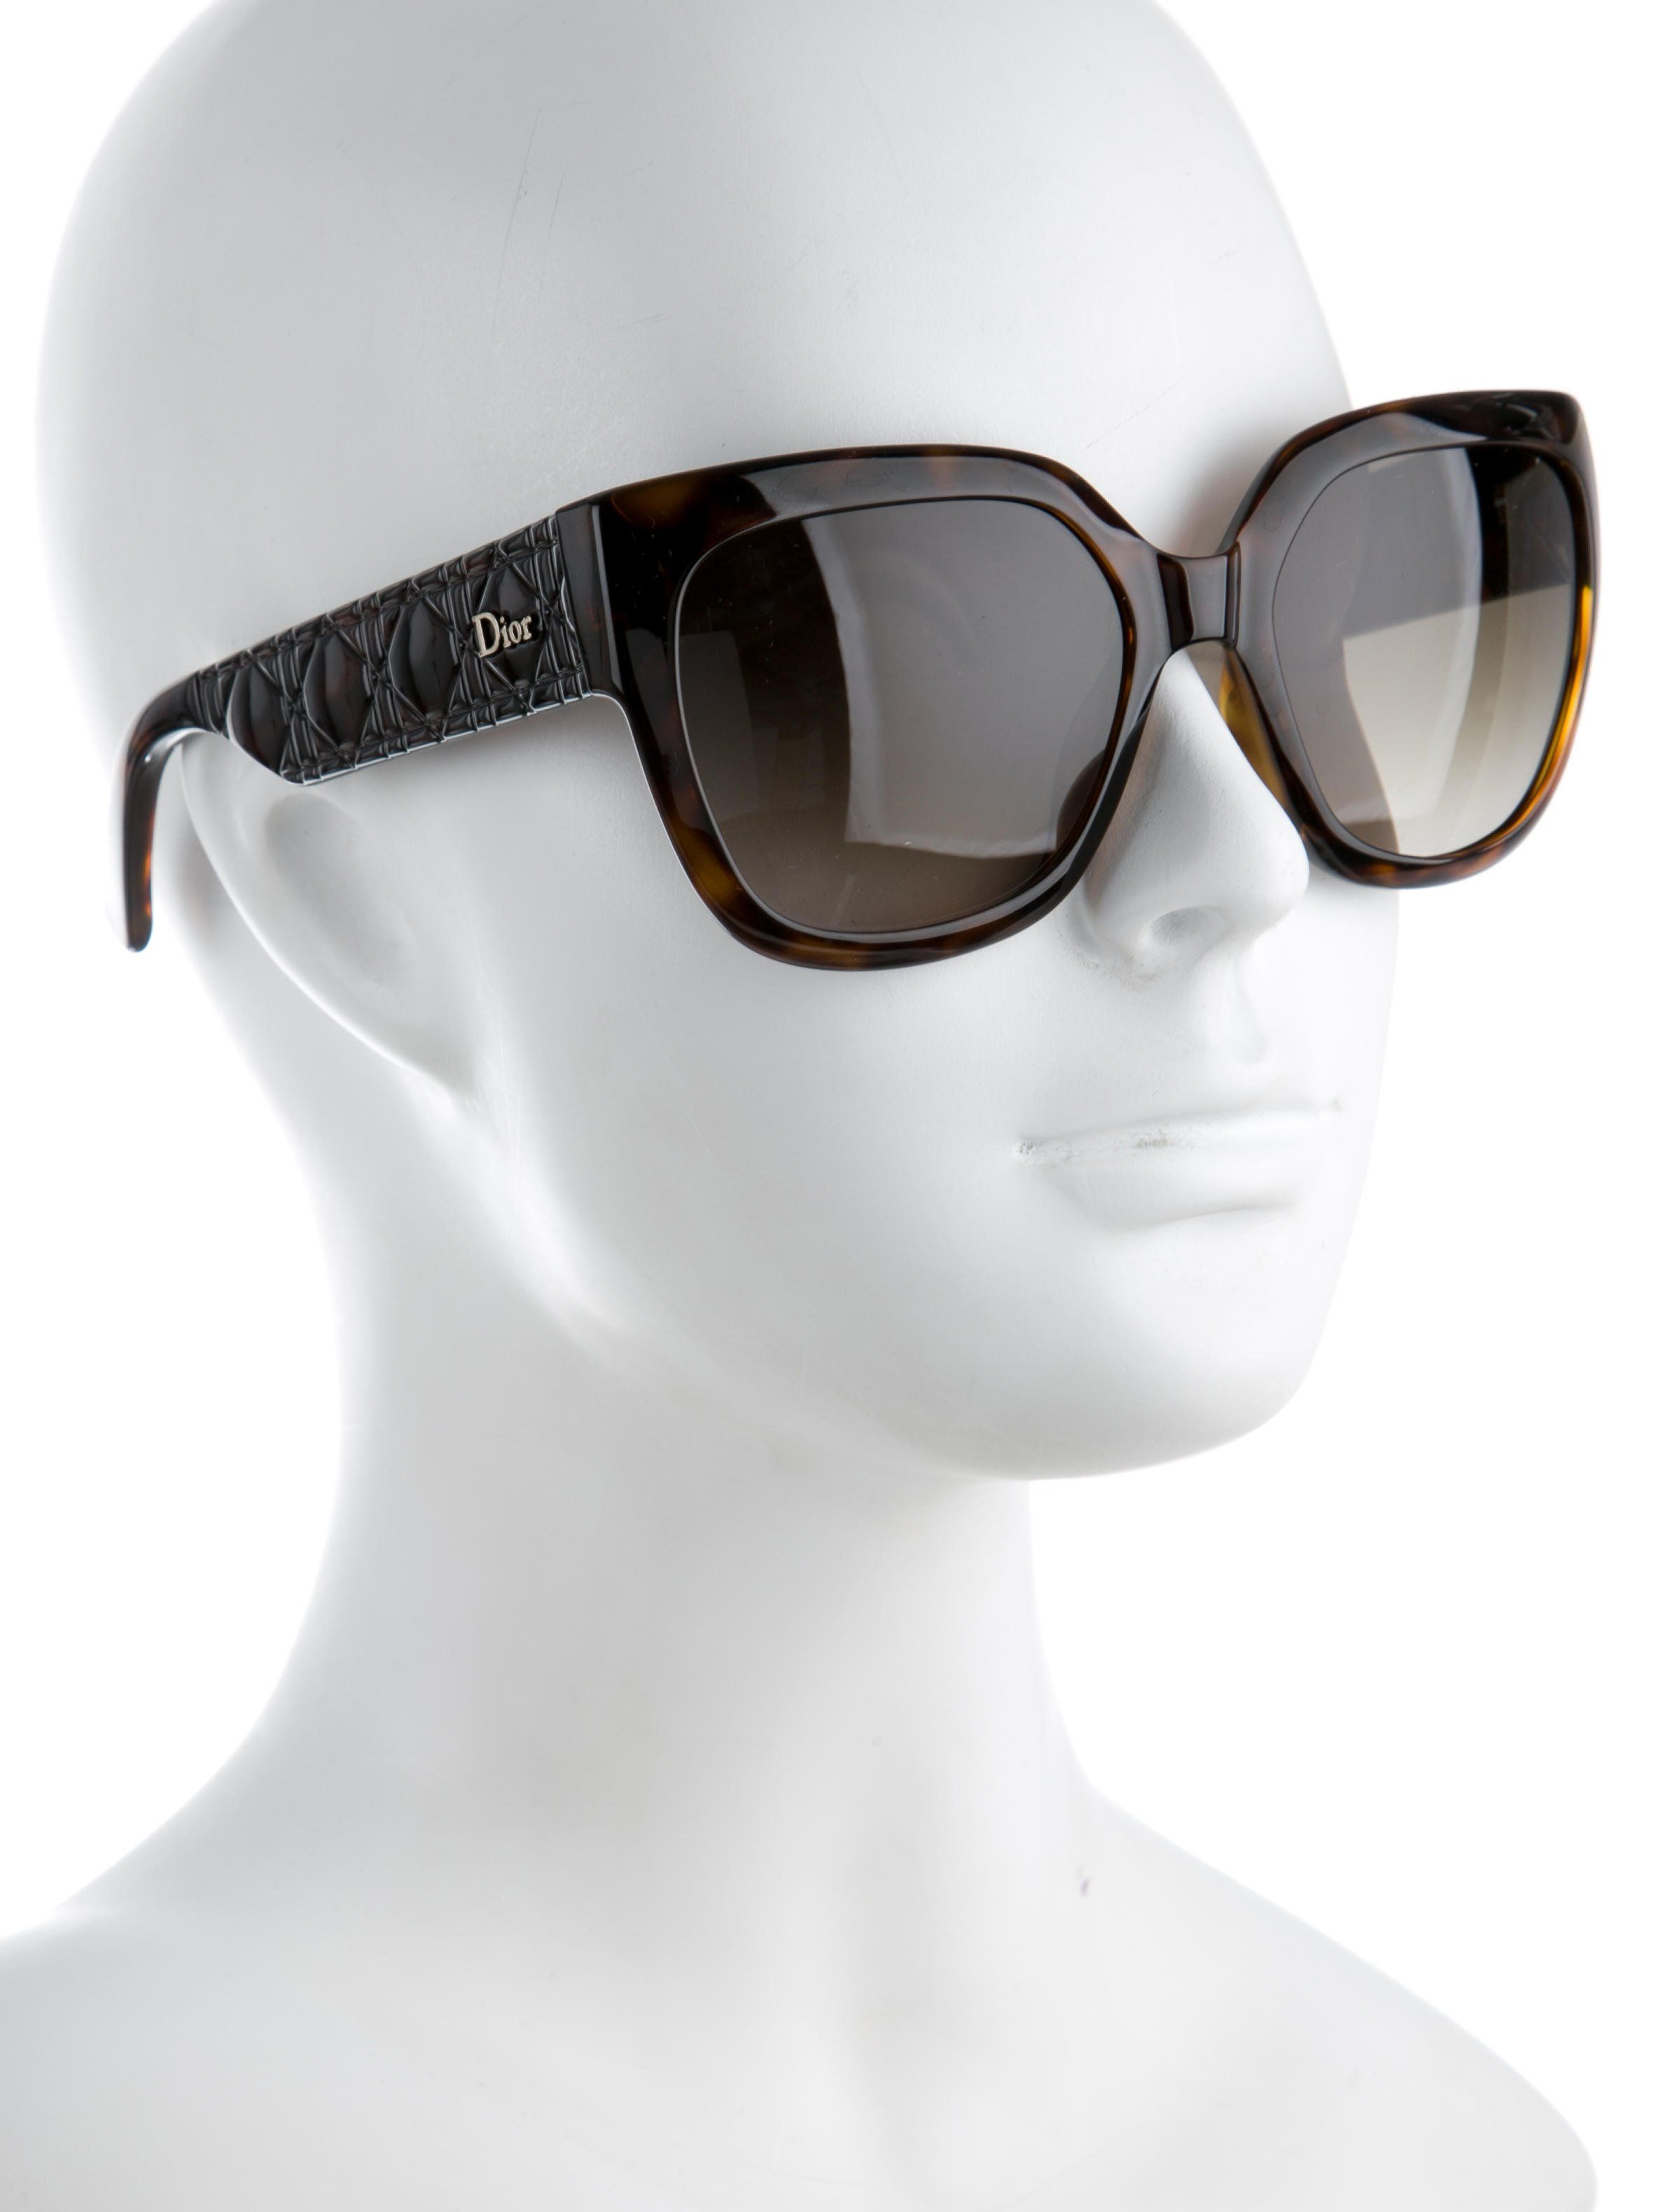 60512b3675 From Current Collection. Brown Christian Dior MyDior 3N sunglasses with  tinted lenses and Cannage arms featuring gold-tone logo.